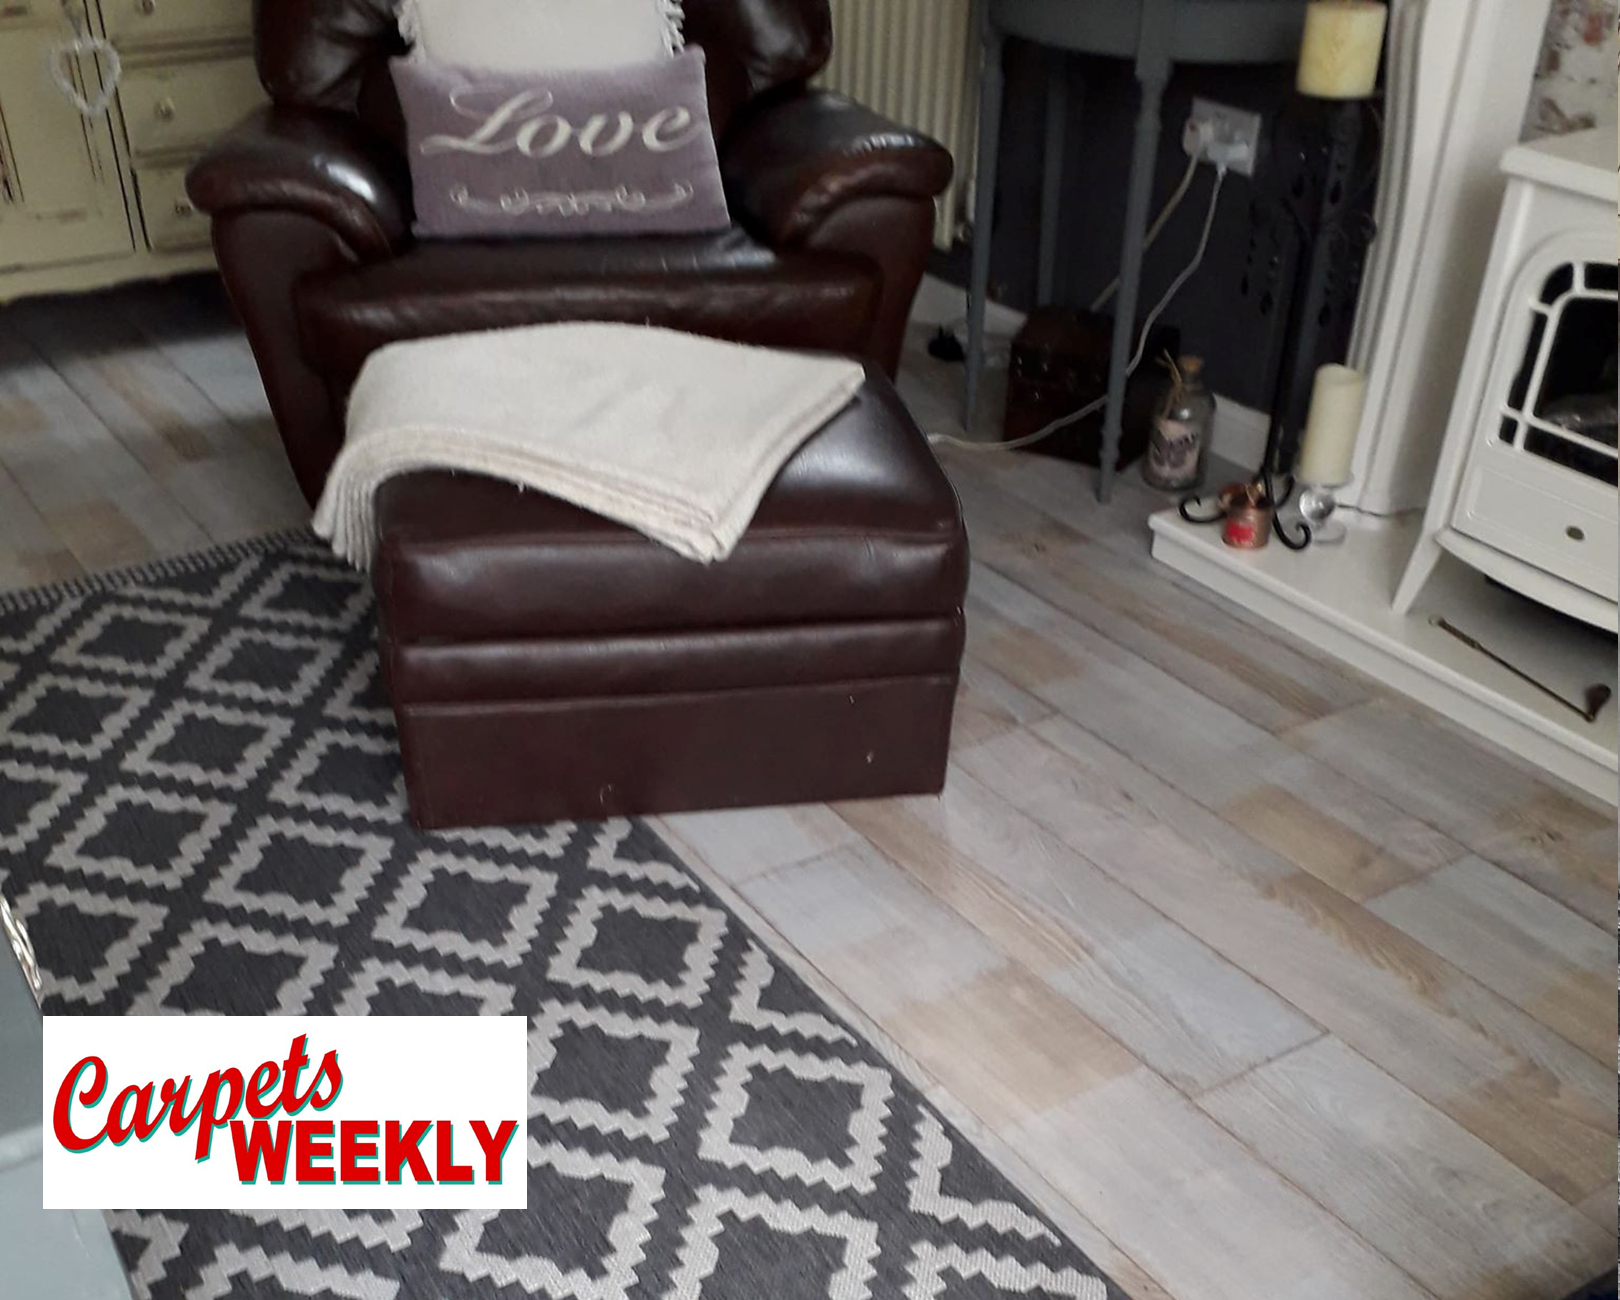 Carpets Weekly Everest Vinyl Flooring Living Room